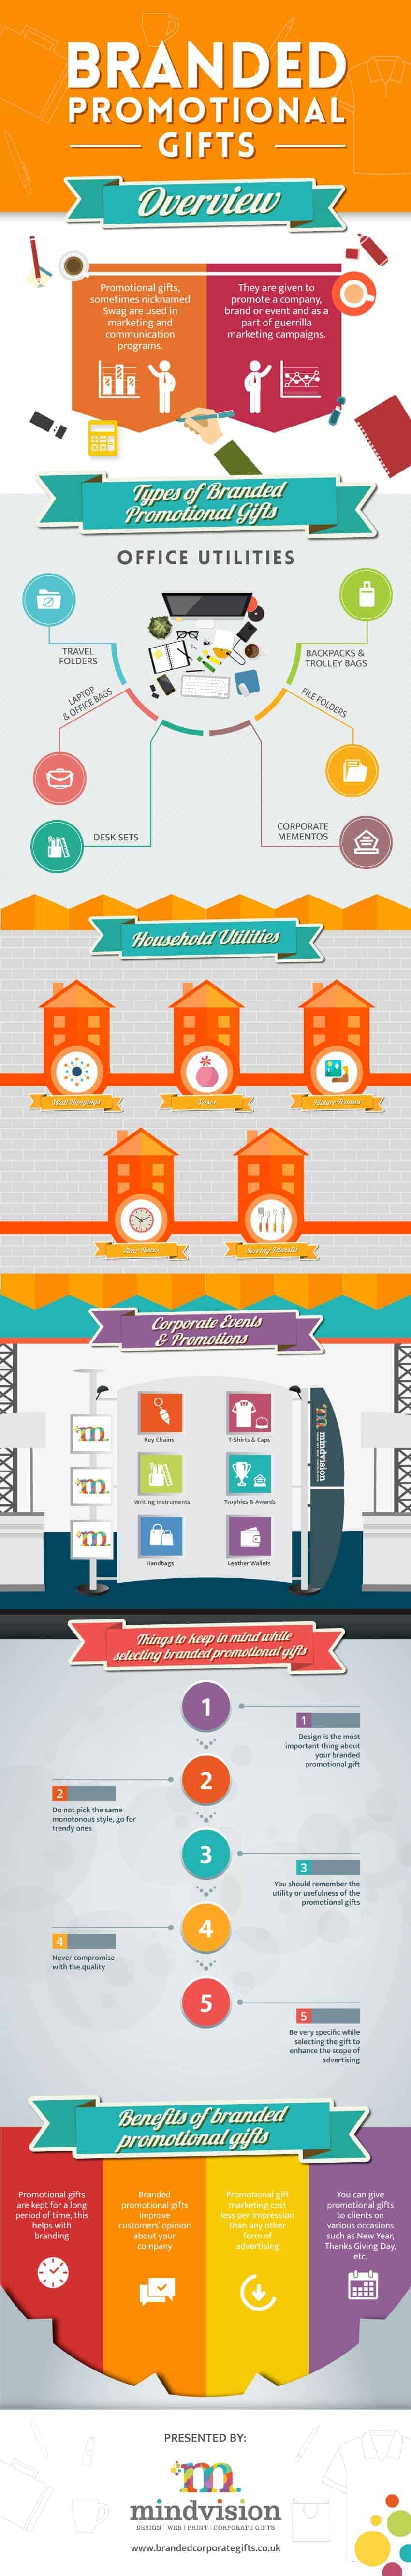 branded promotional gift business infographic